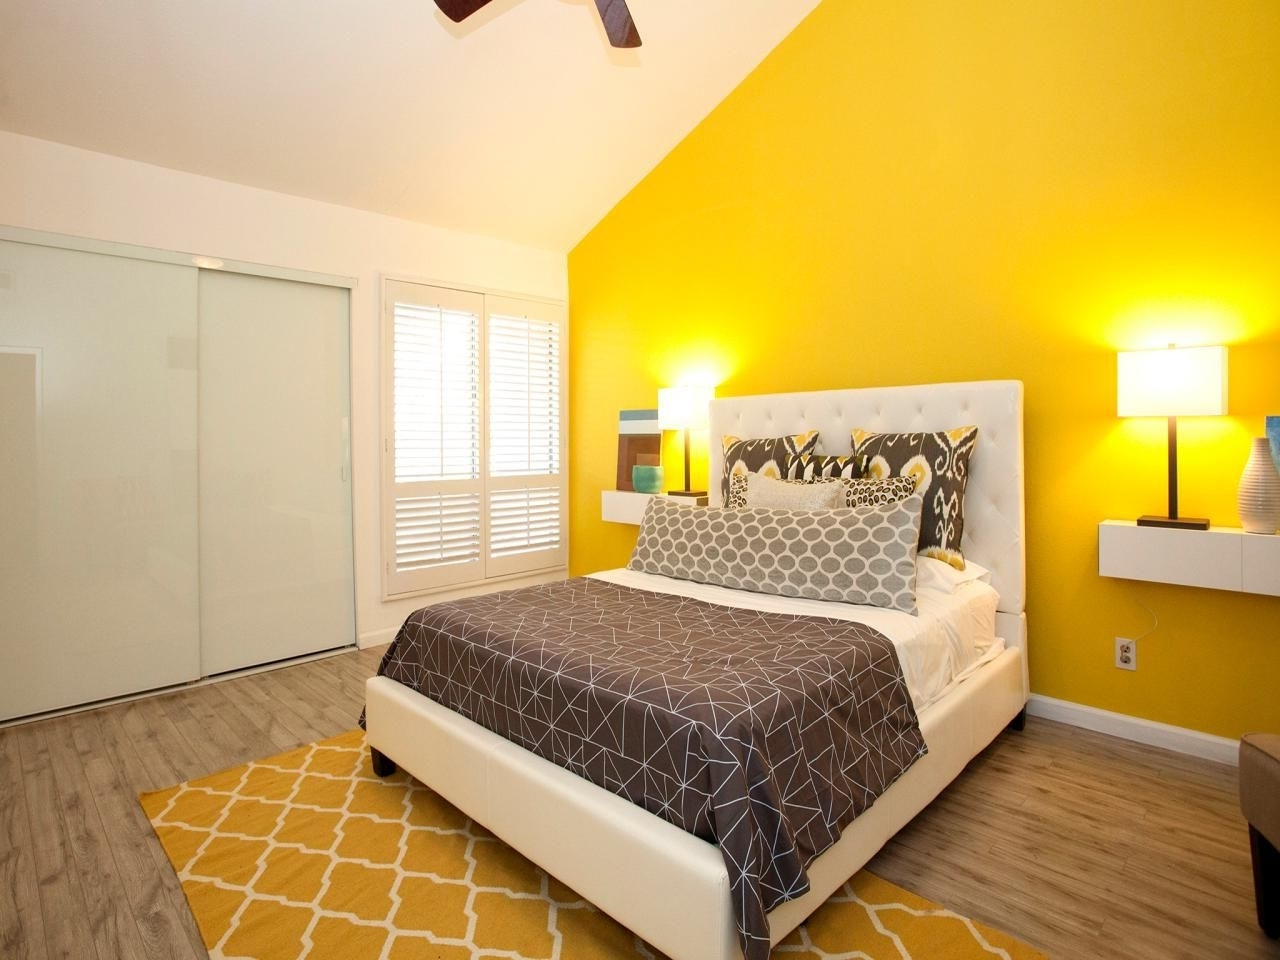 Preferred Yellow Wall Accents For 14 Living Room And Bedroom Makeovers From House Hunters Renovation (View 11 of 15)